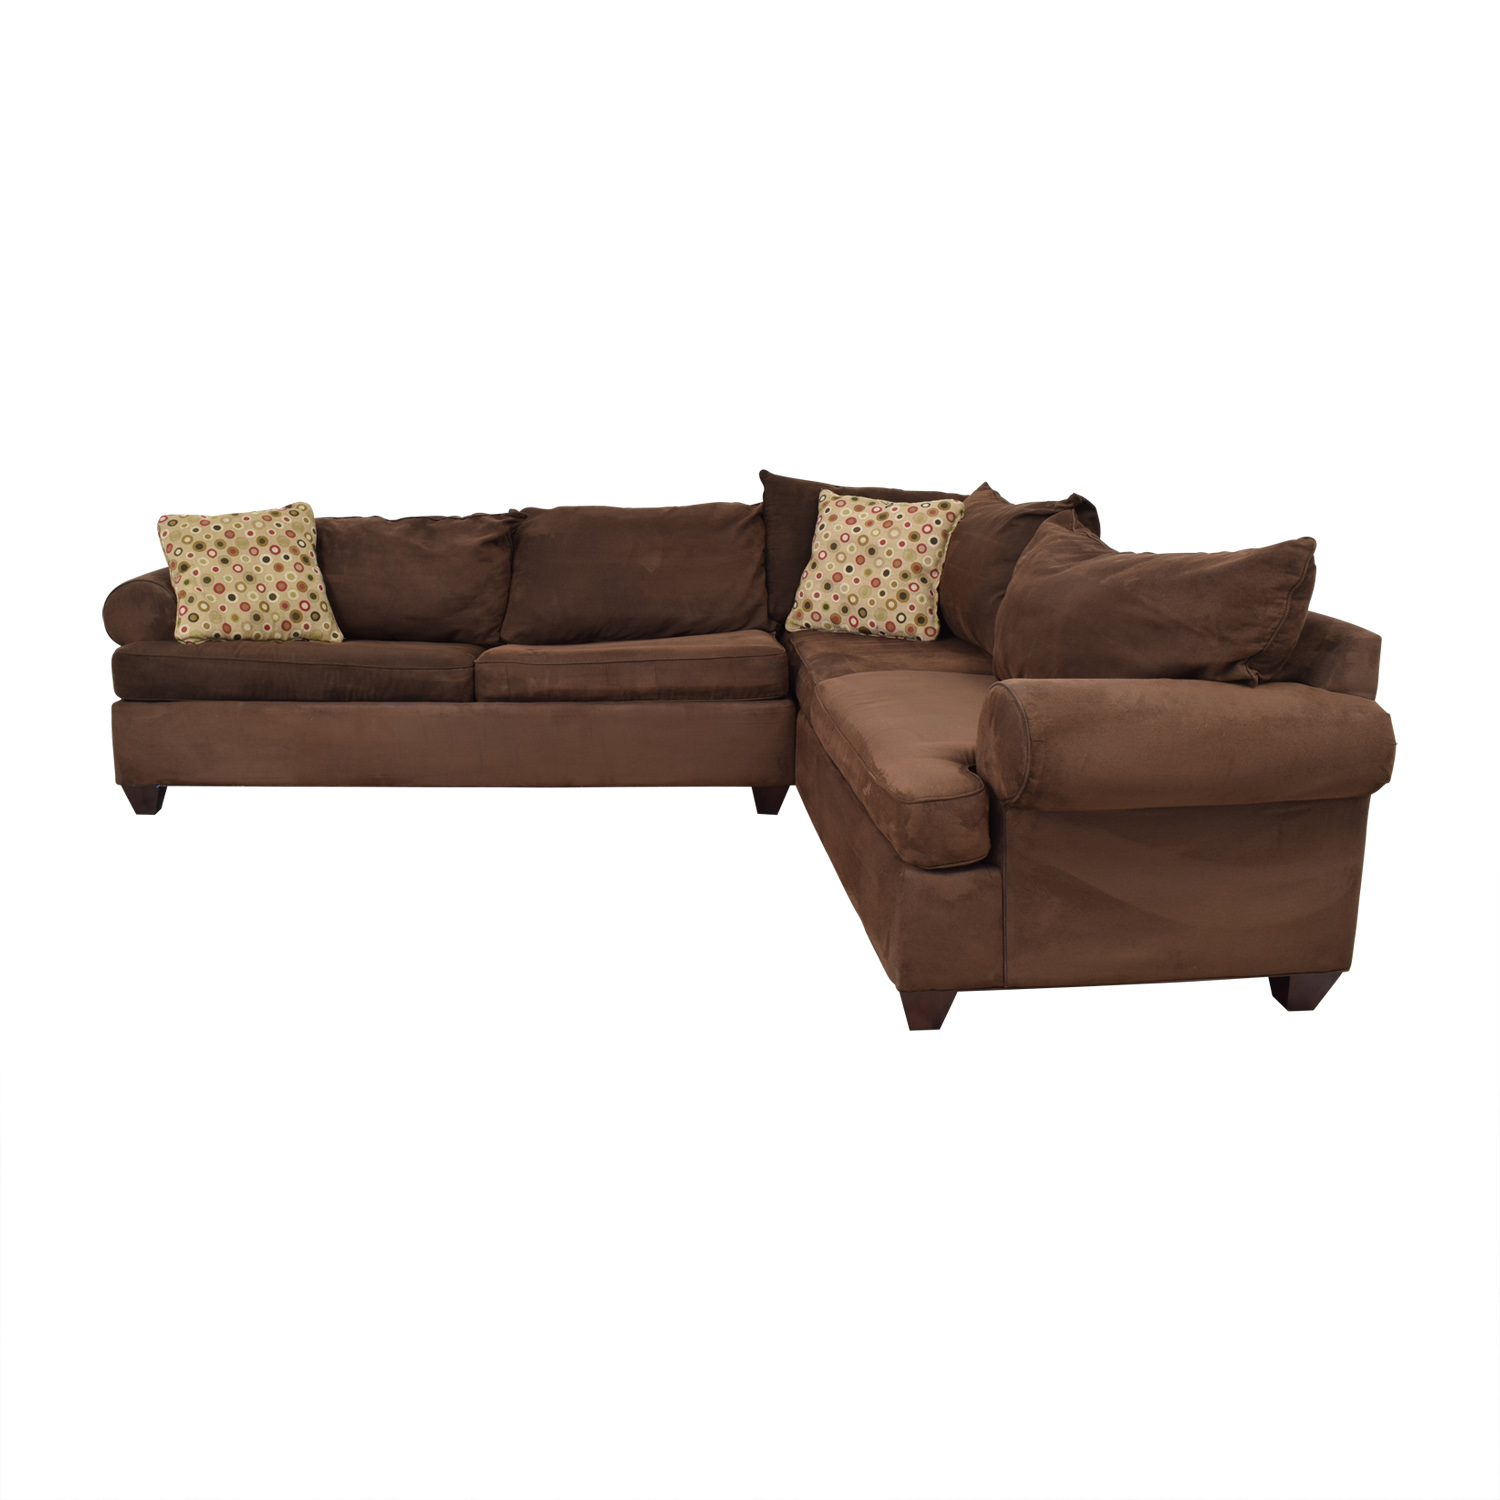 Raymour & Flanigan Raymour & Flanigan Brown L-Shaped Sectional With Pull-Out Convertible Bed